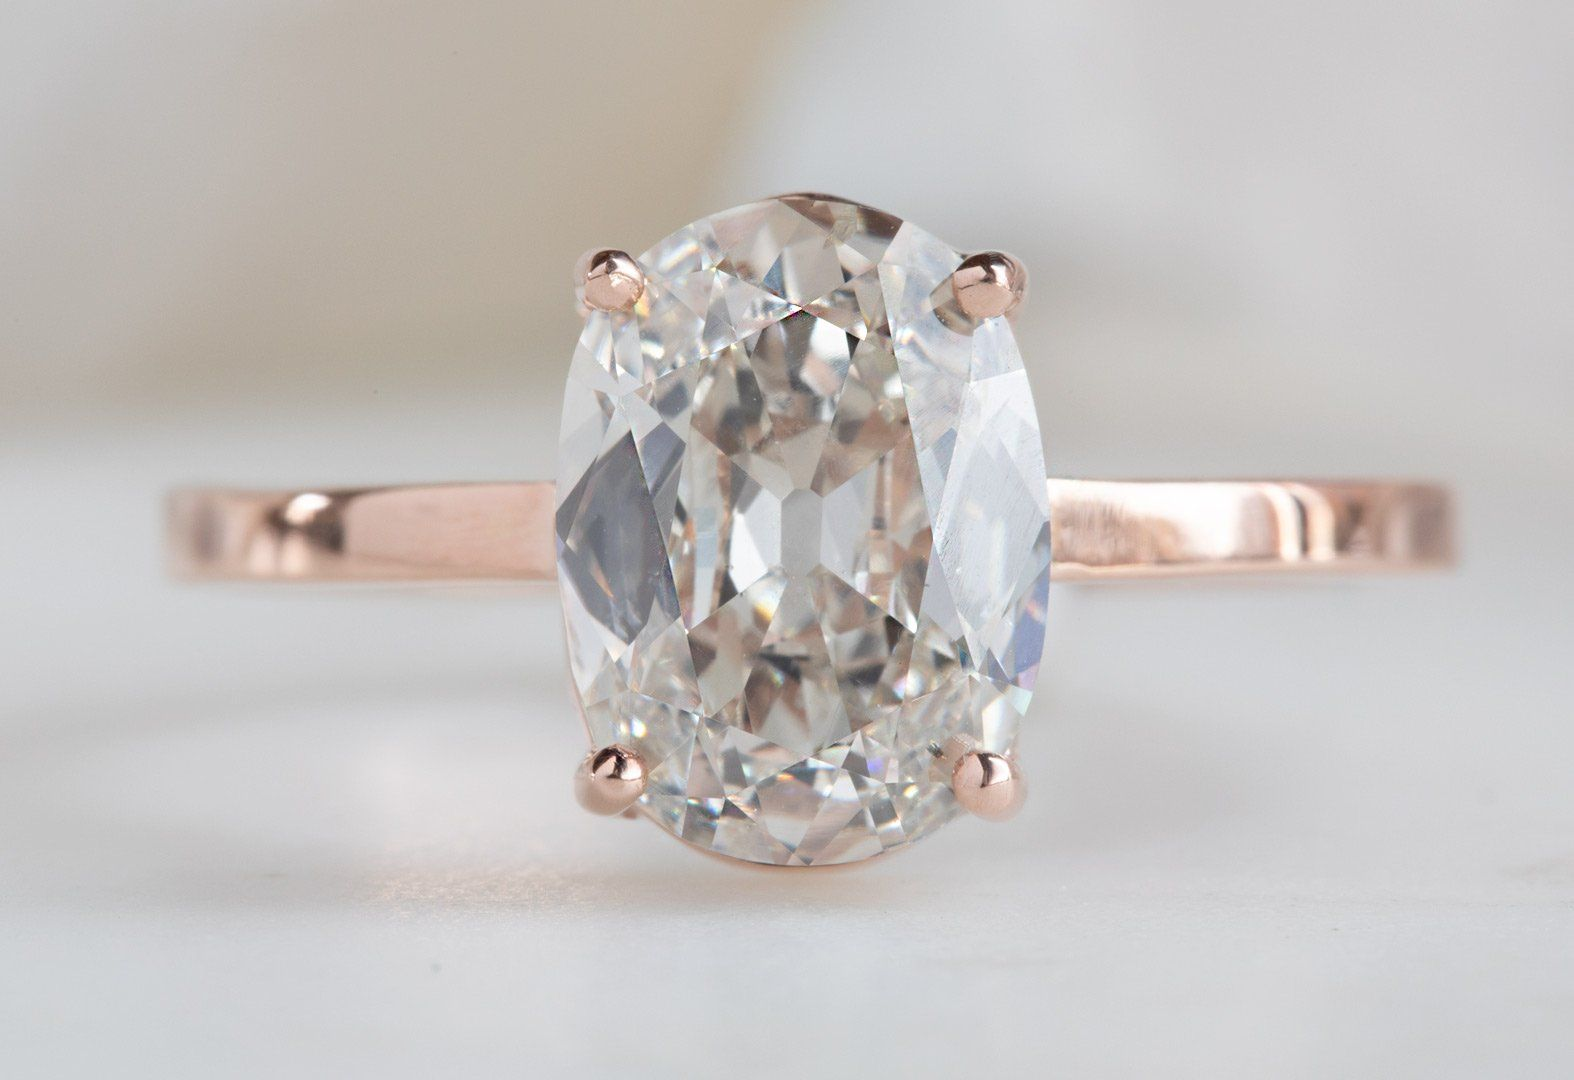 One of a Kind Pale Pink Old Mine Cut Diamond Engagement Ring - Engagement ring diamond cut, White diamond rings engagement, Diamond cuts, Rose gold engagement ring, Engagement rings, Pretty engagement rings - stacking bands shown are available here